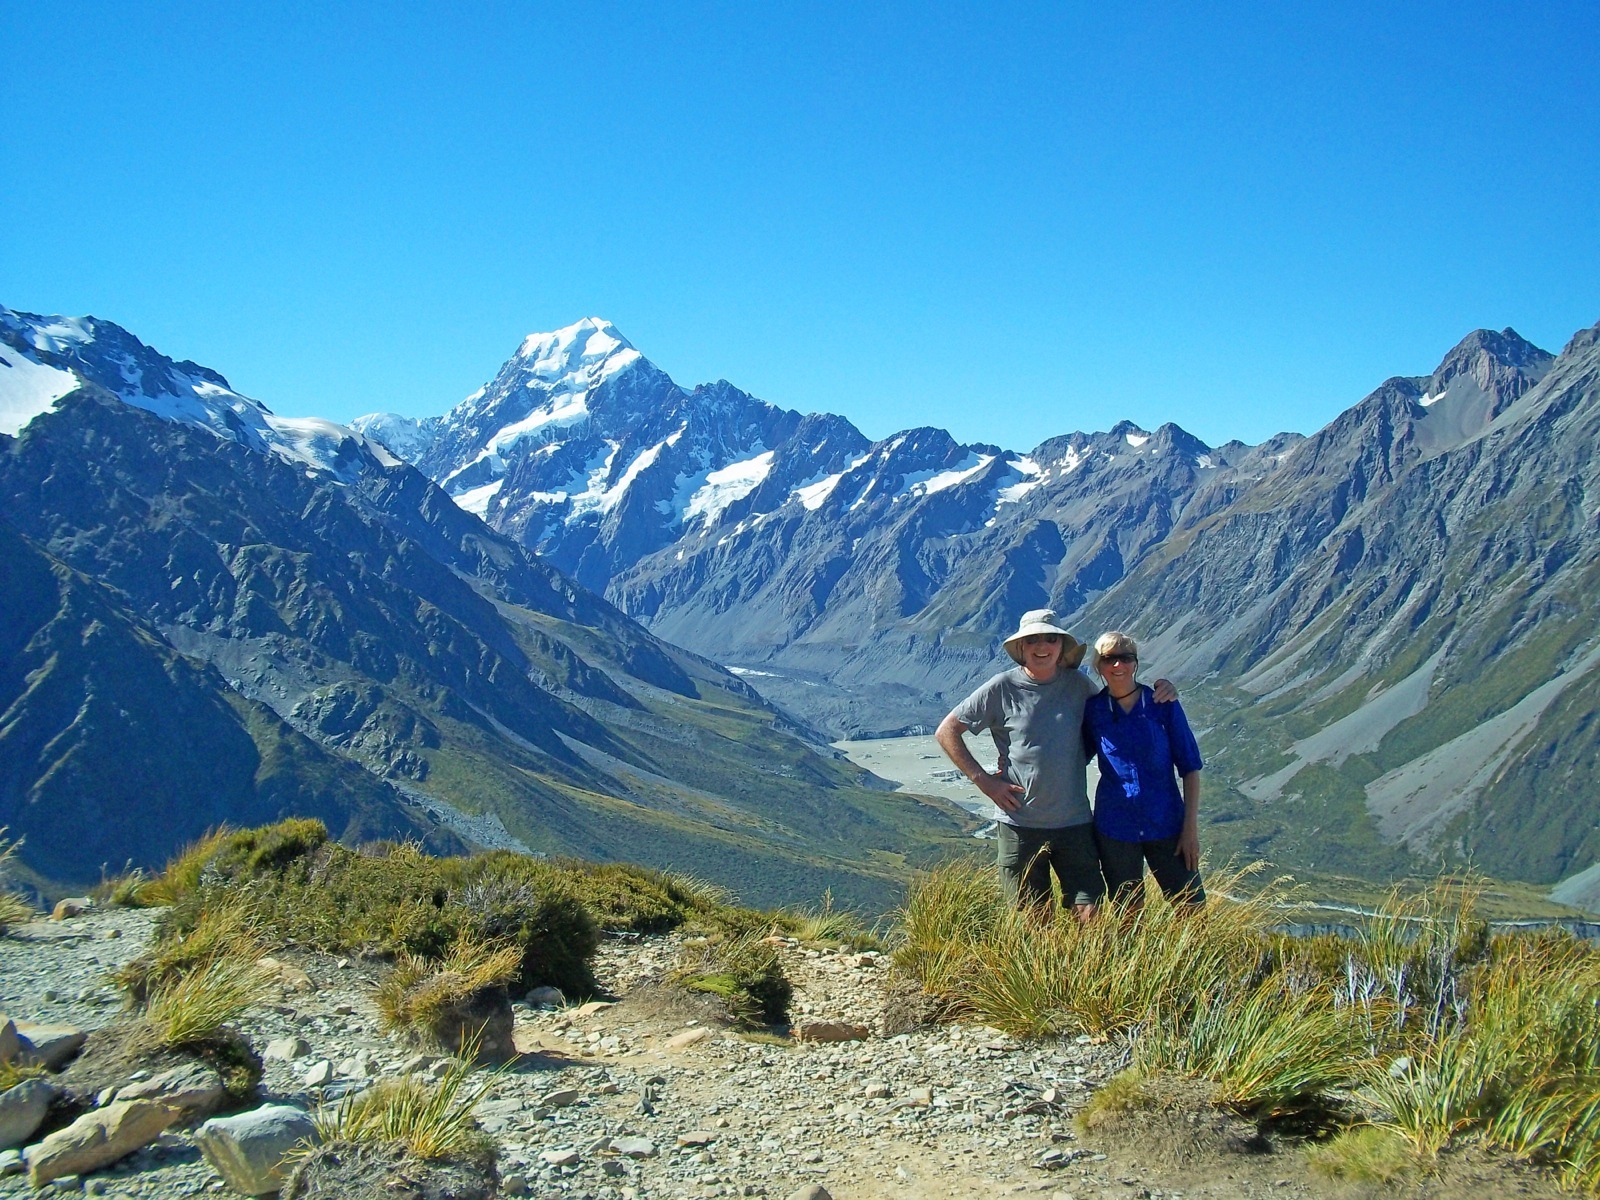 Two participants pose in front of mountains while hiking Sealy Tarns New Zealand